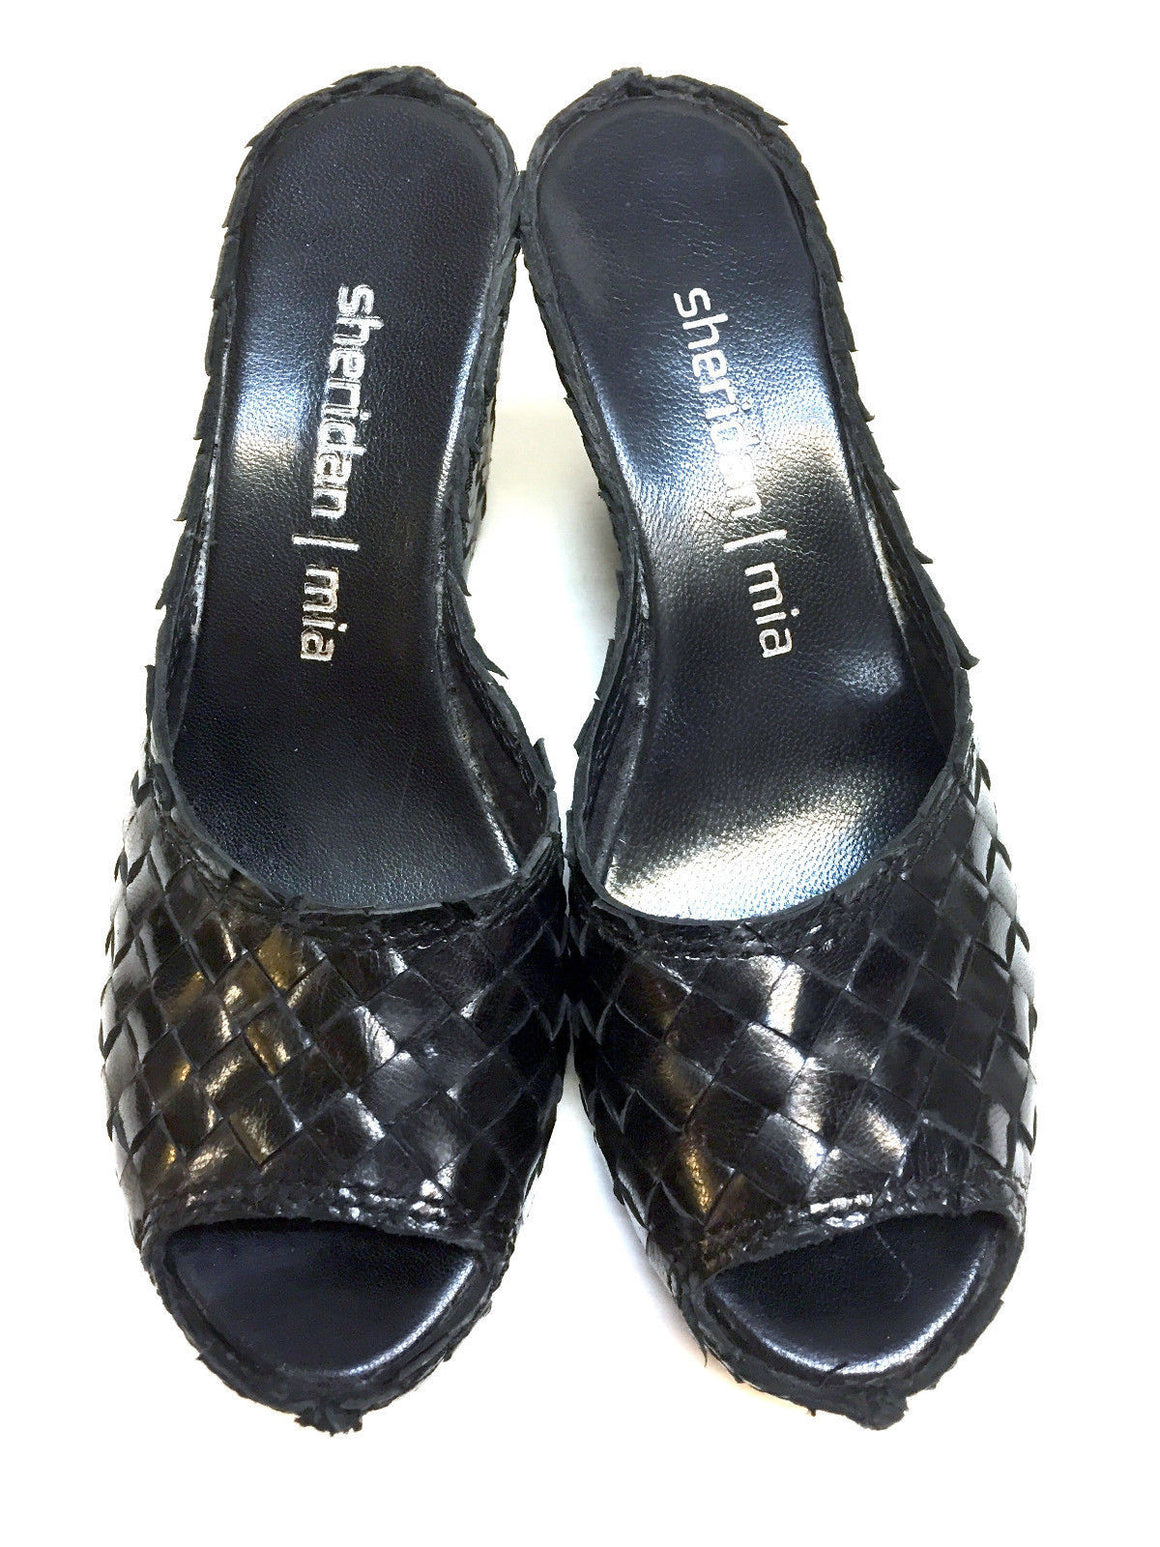 bisbiz.com SHERIDAN/MIA   Black Basketweave Leather Wedge Heel Platform Slip-On Mules Shoes  Size: 37 / 7 - Bis Luxury Resale